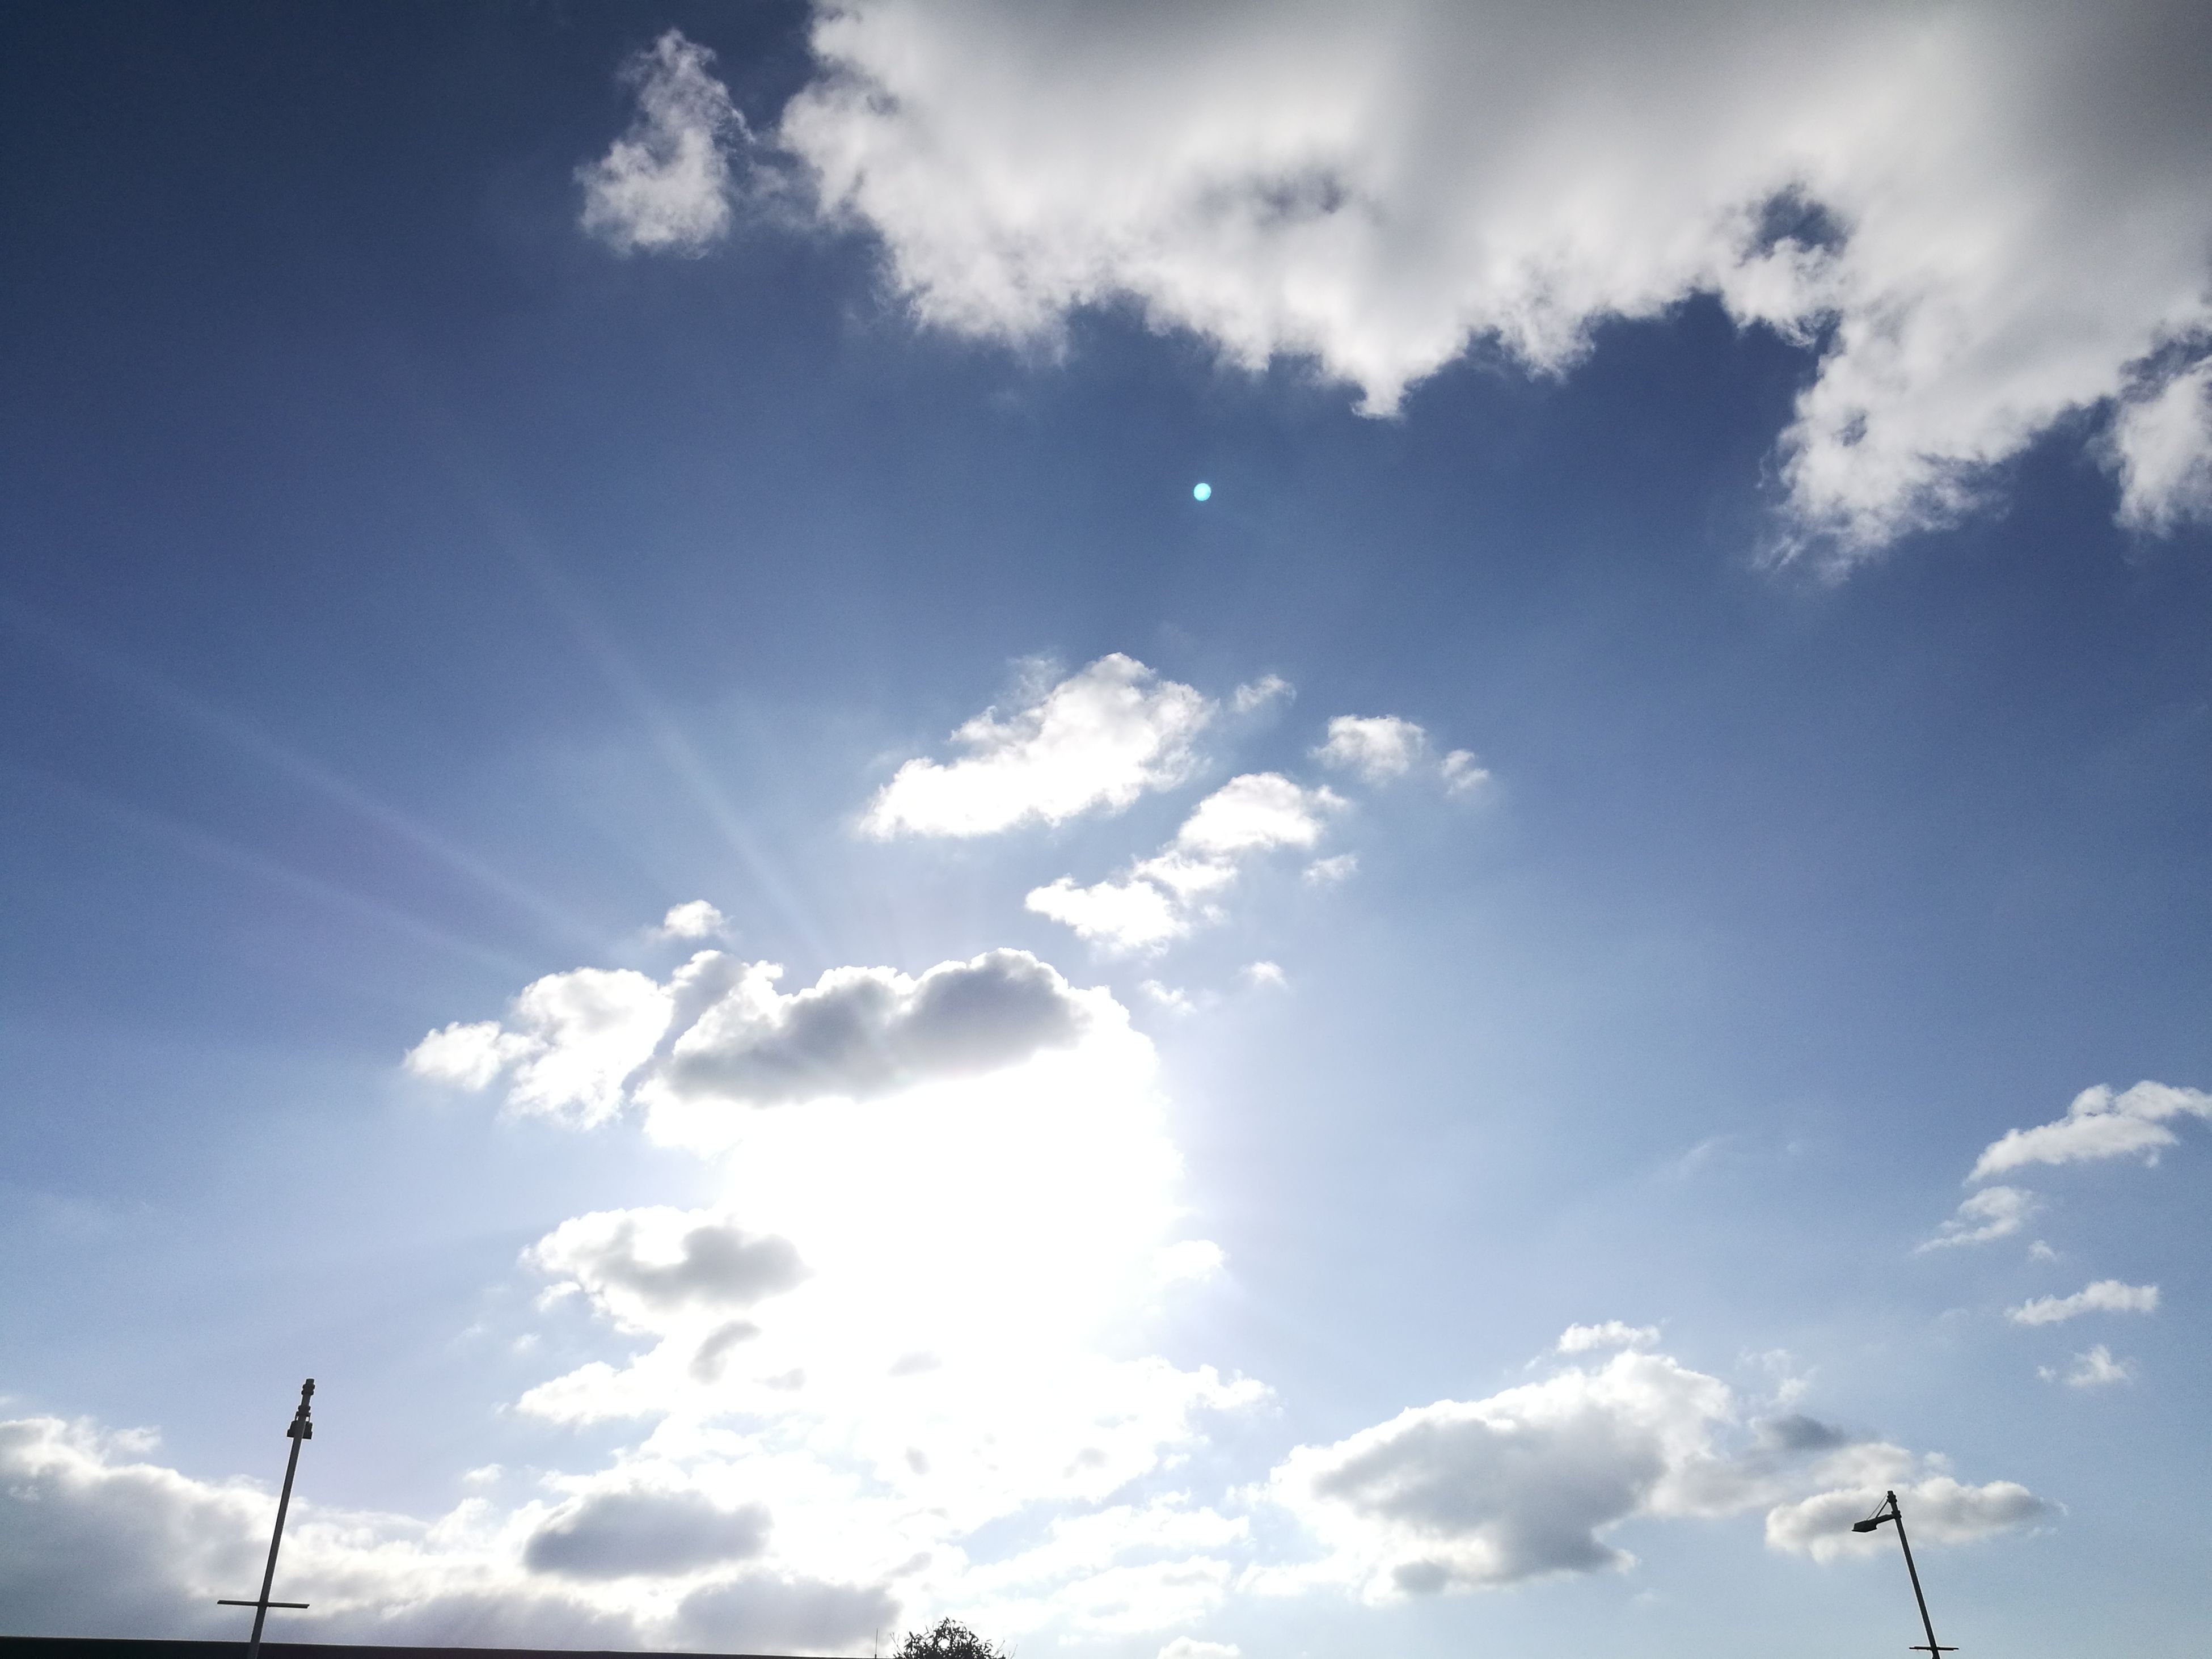 sky, low angle view, cloud - sky, nature, no people, sunlight, tranquility, beauty in nature, outdoors, day, sun